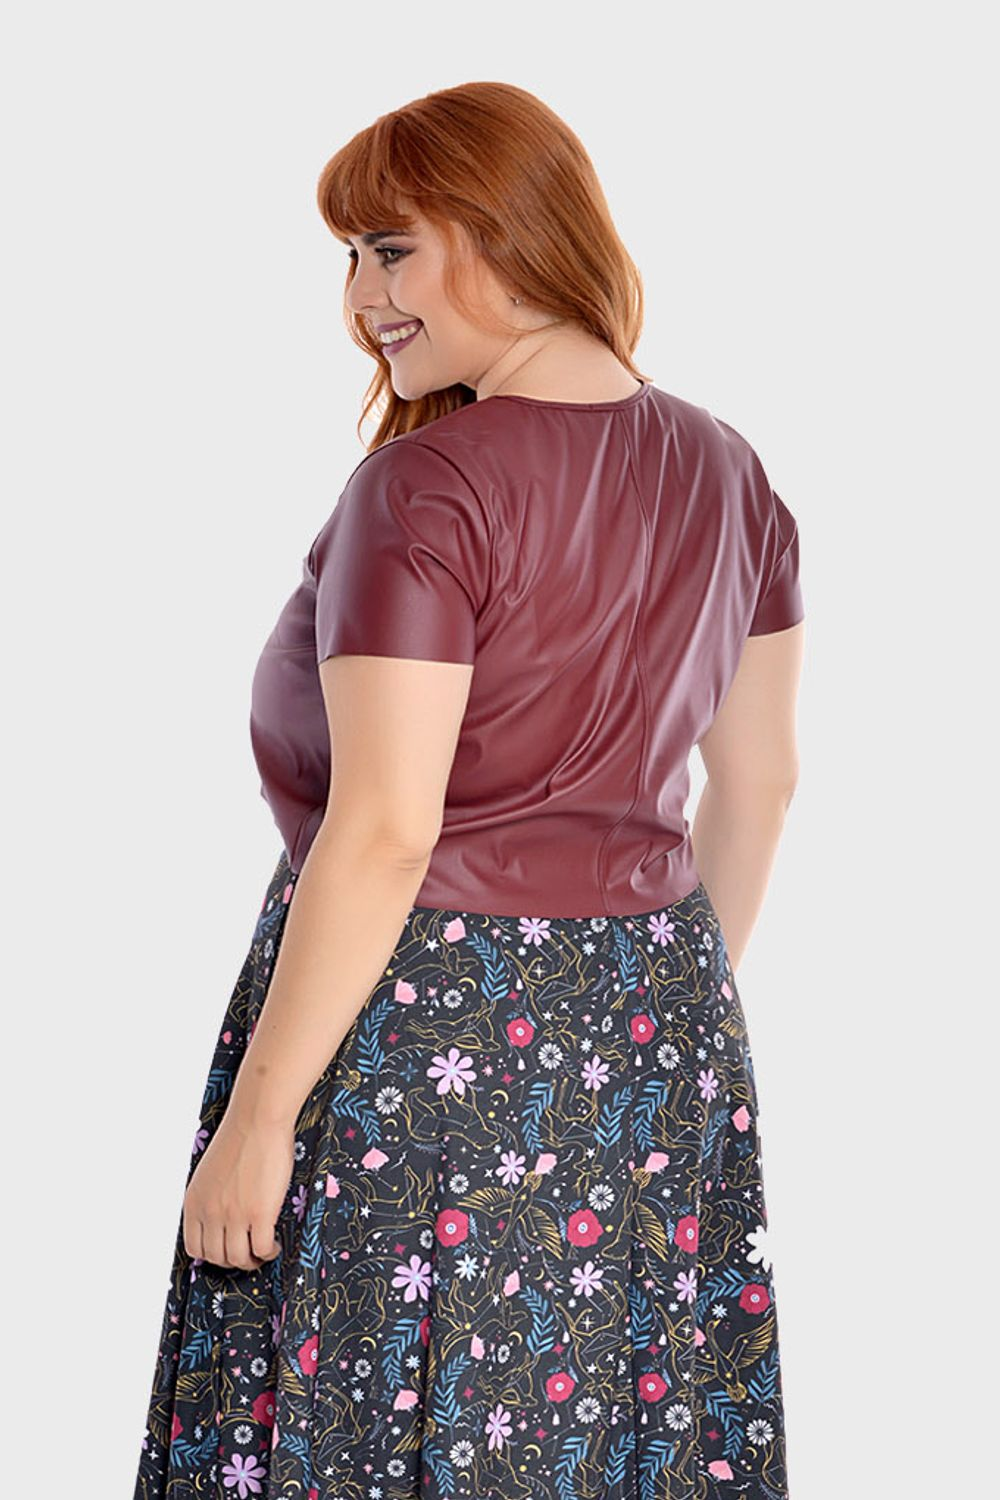 Cropped-Couto-Scarlet-Plus-Size_T1